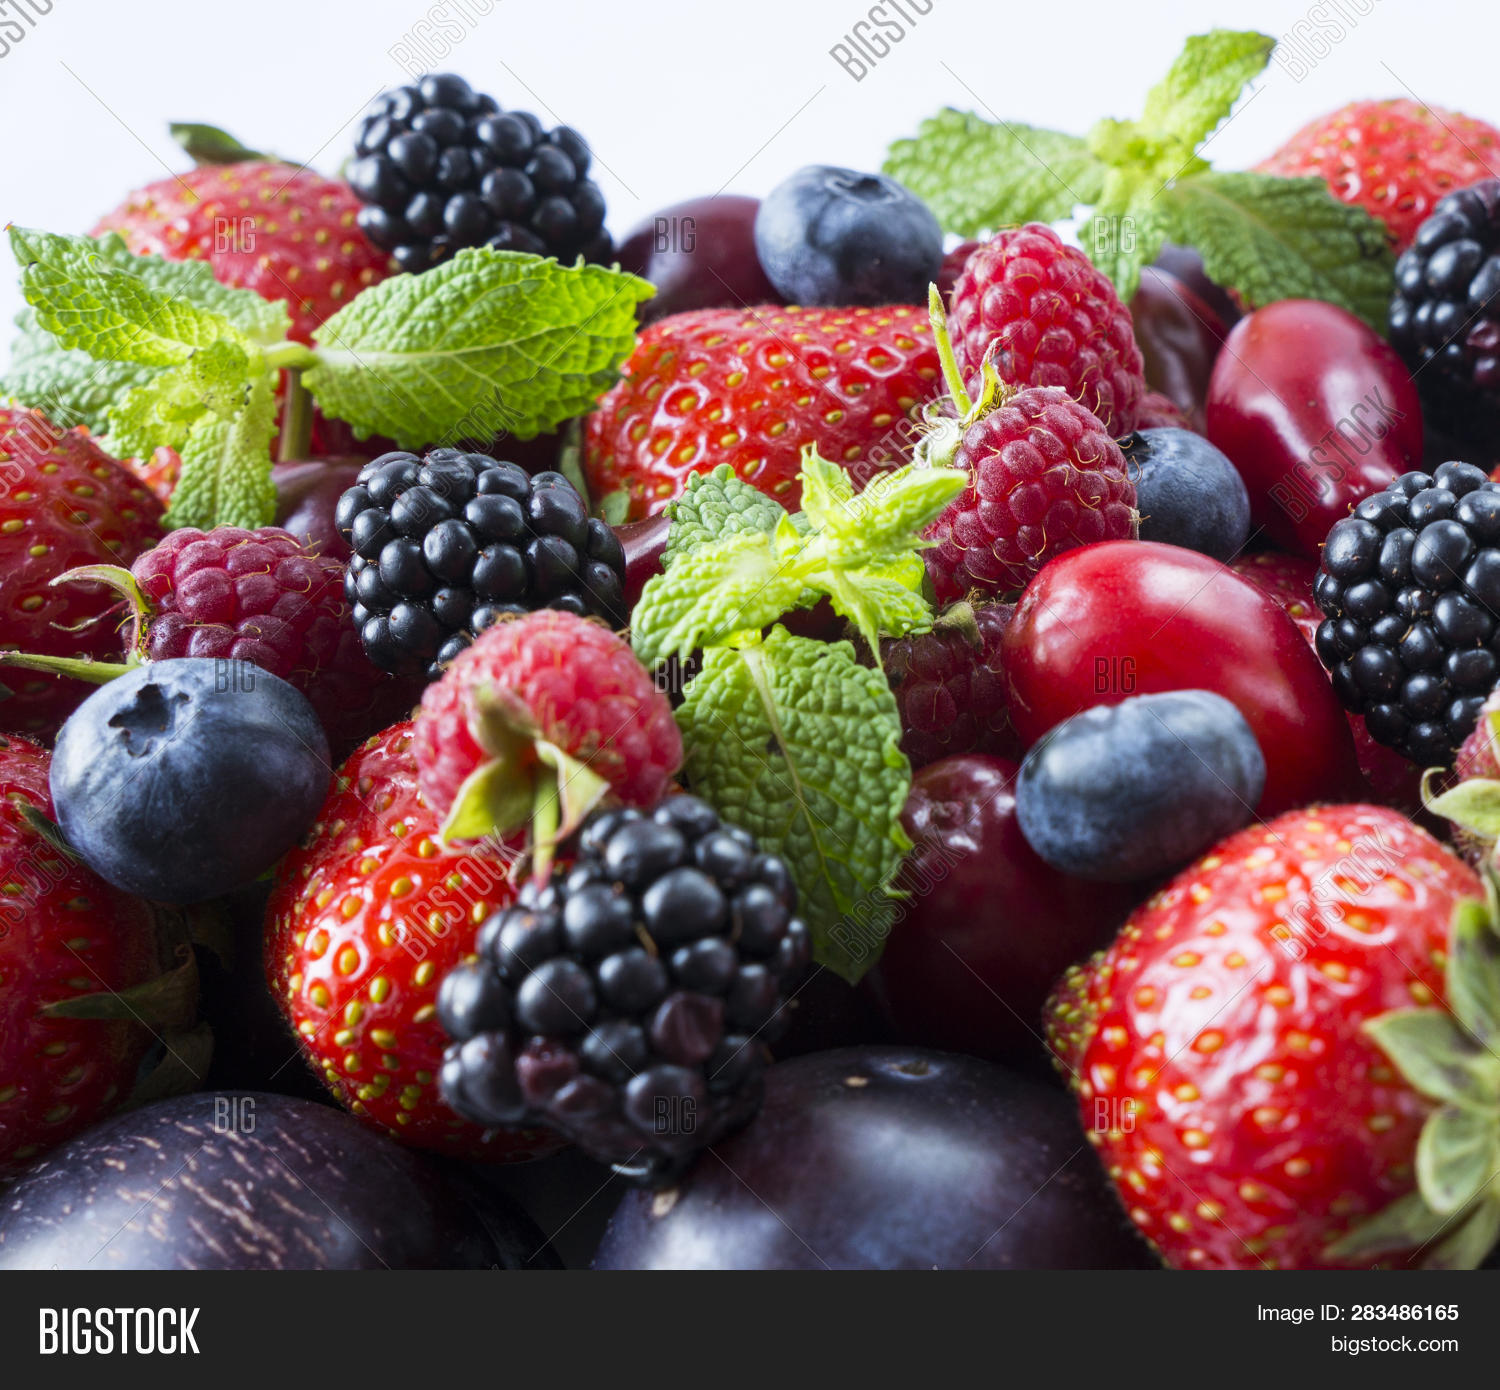 agriculture,background,berry,blackberries,blueberry,close,closeup,color,colorful,copy,cut,cutout,delicious,dessert,diet,different,food,fresh,fruit,garden,group,health,juice,juicy,kitchen,market,mix,mixed,nature,nutrition,nutritious,organic,plants,plum,raspberries,red,ripe,space,strawberry,summer,sweet,tasty,text,up,variety,vegetarian,vitamin,white